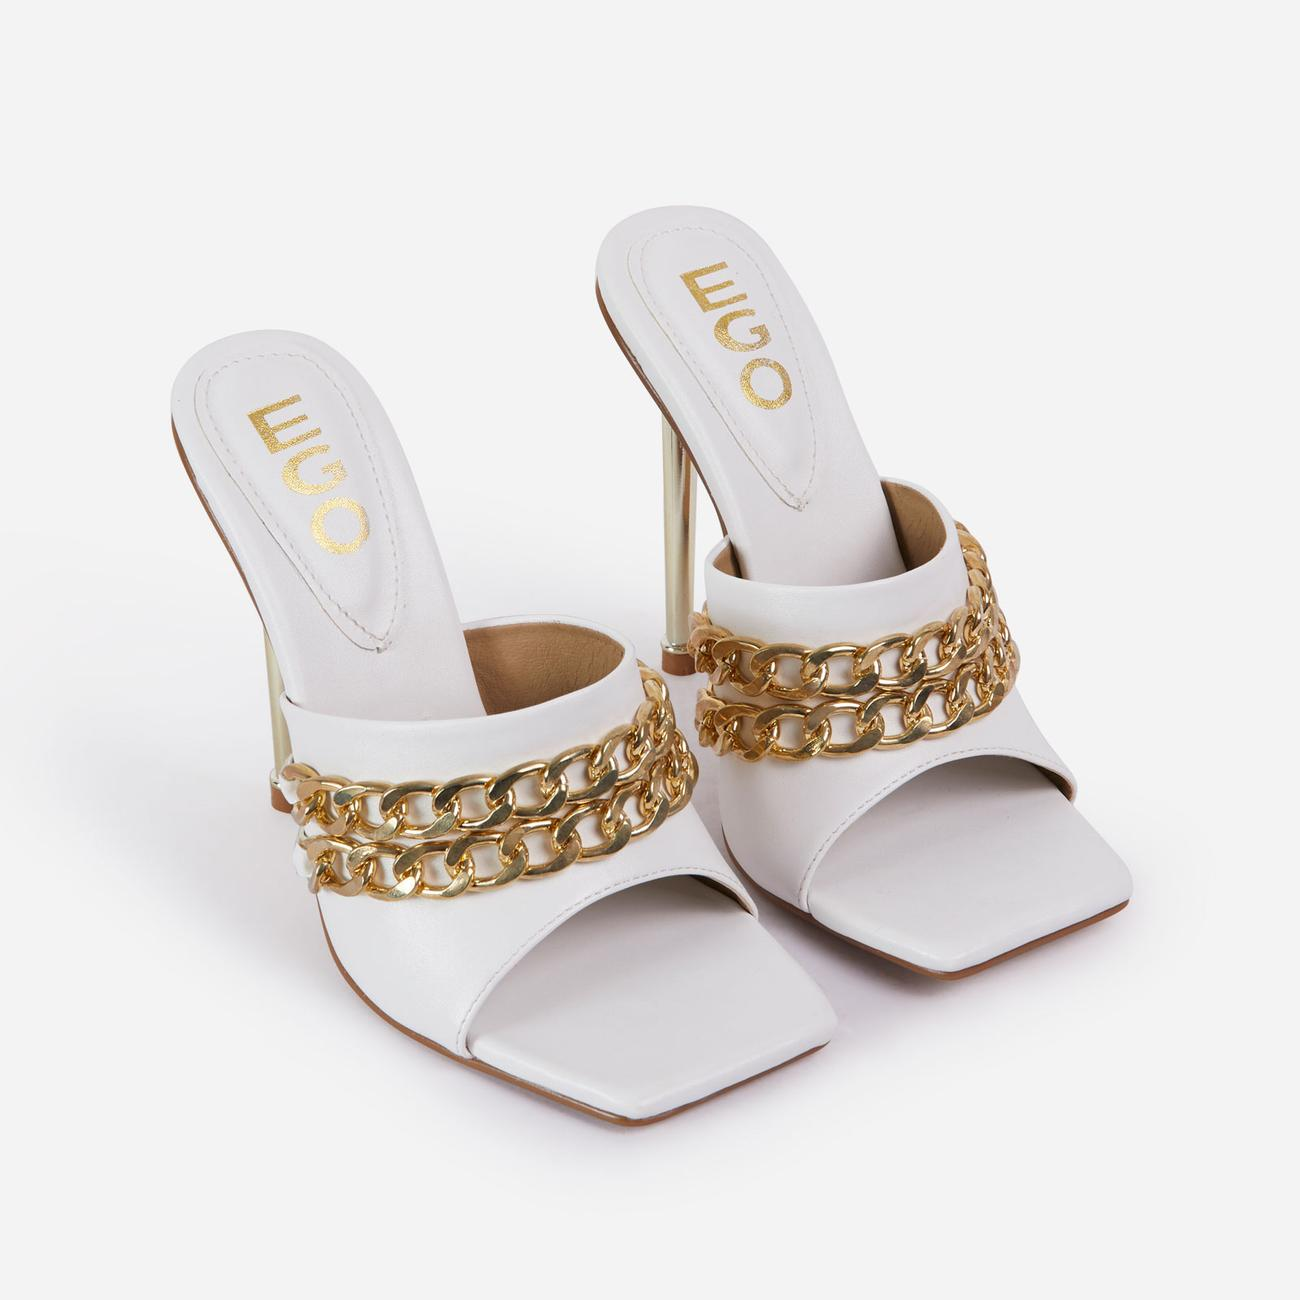 Fund Chain Detail Square Peep Toe Metallic Heel Mule In White Faux Leather Image 2